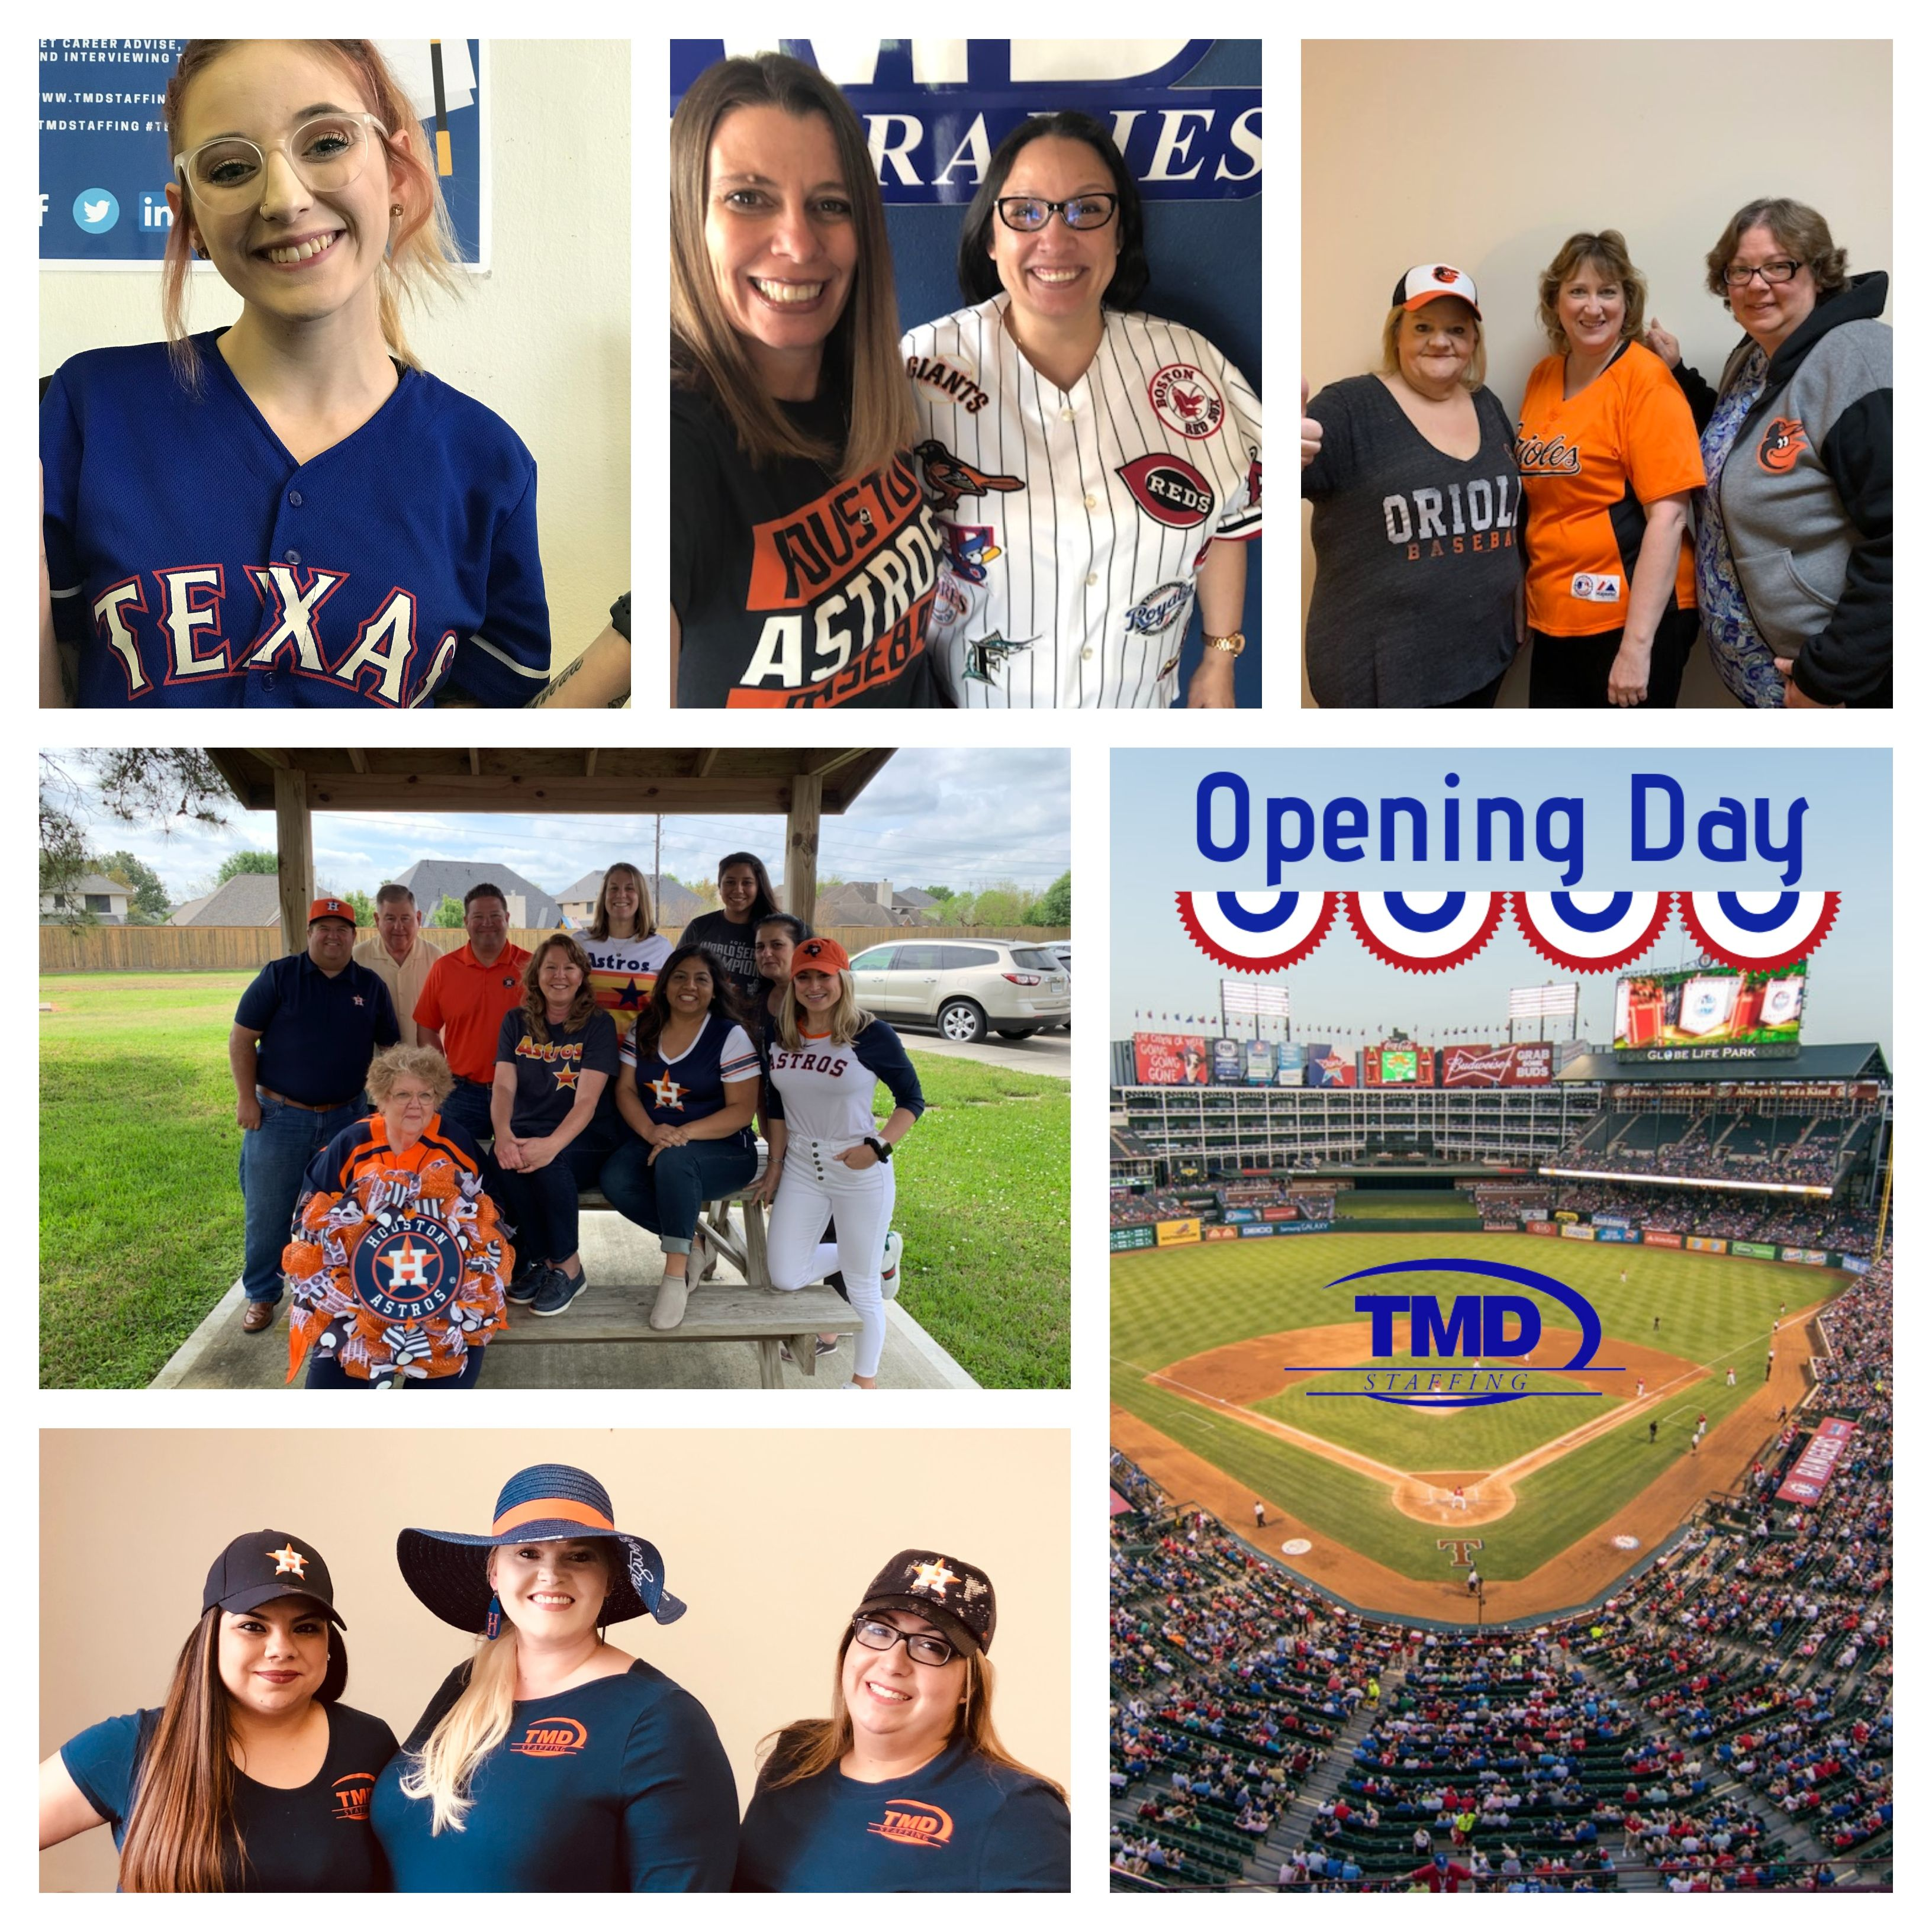 Opening Day 2019 We May Support Different Mlb Teams But We All Support Team Tmd Openingday Mlb Support Teamtmd Tmdstaffi With Images Opening Day Mlb Teams One Team